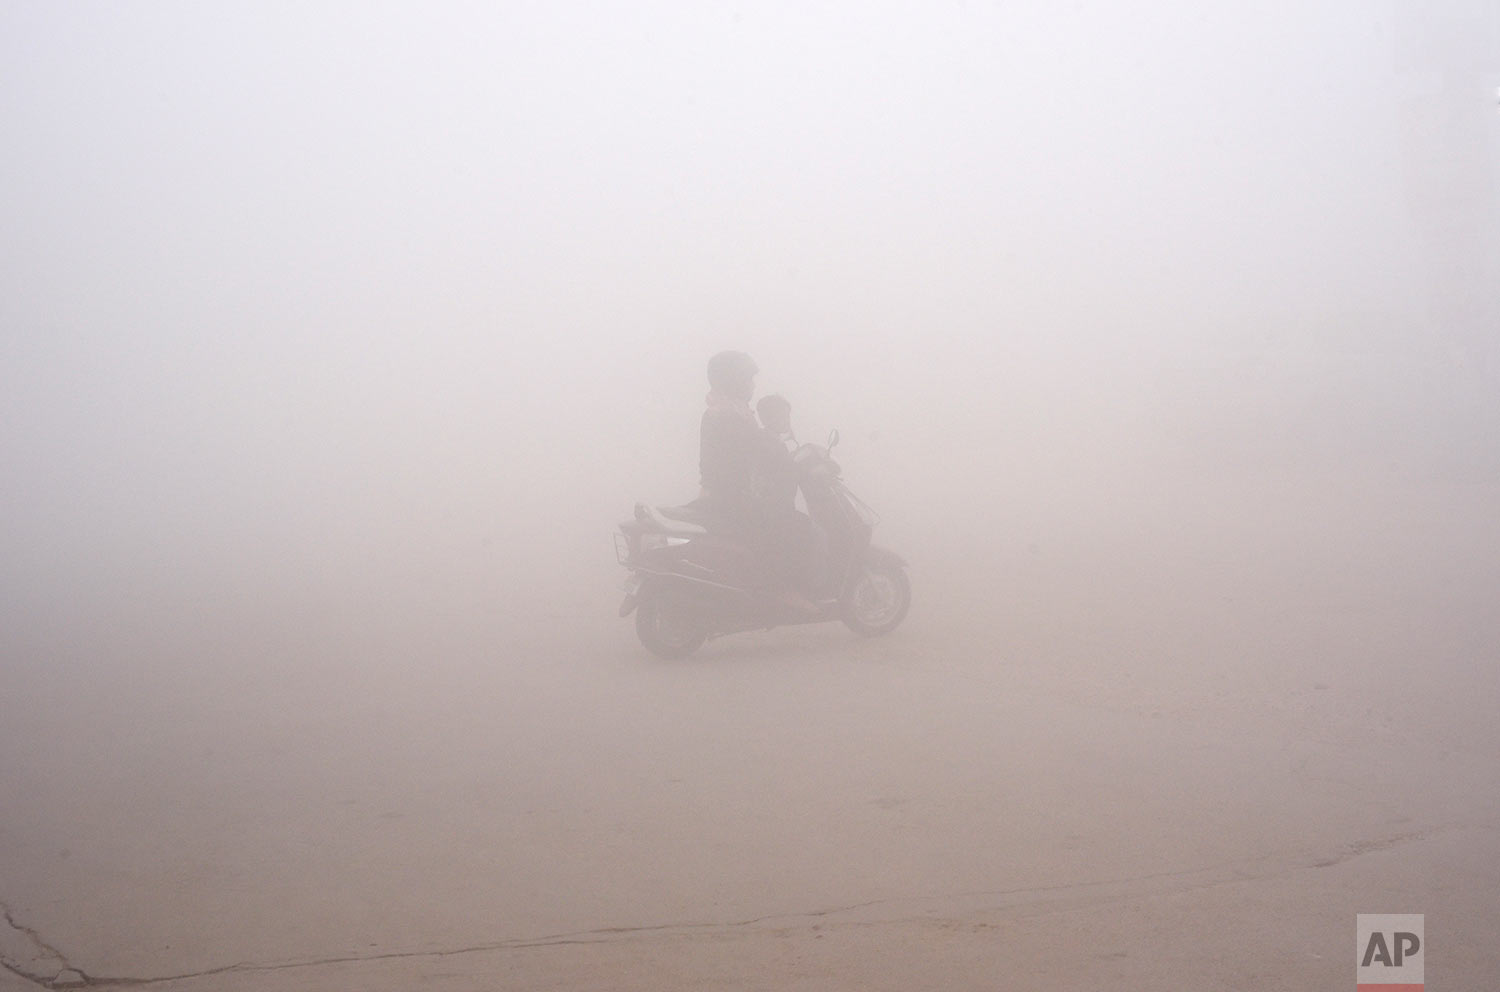 In this Thursday, Nov. 9, 2017, photo, a woman drives a scooter through the morning fog to drop off a child at school in Greater Noida, near New Delhi, India. A thick gray haze has enveloped India's capital region as air pollution hit hazardous levels. As winter approaches, a thick, soupy smog routinely envelops most parts of northern India, caused by dust, the burning of crops, emissions from factories and the burning of coal and piles of garbage as the poor try to keep warm. (AP Photo/R S Iyer)